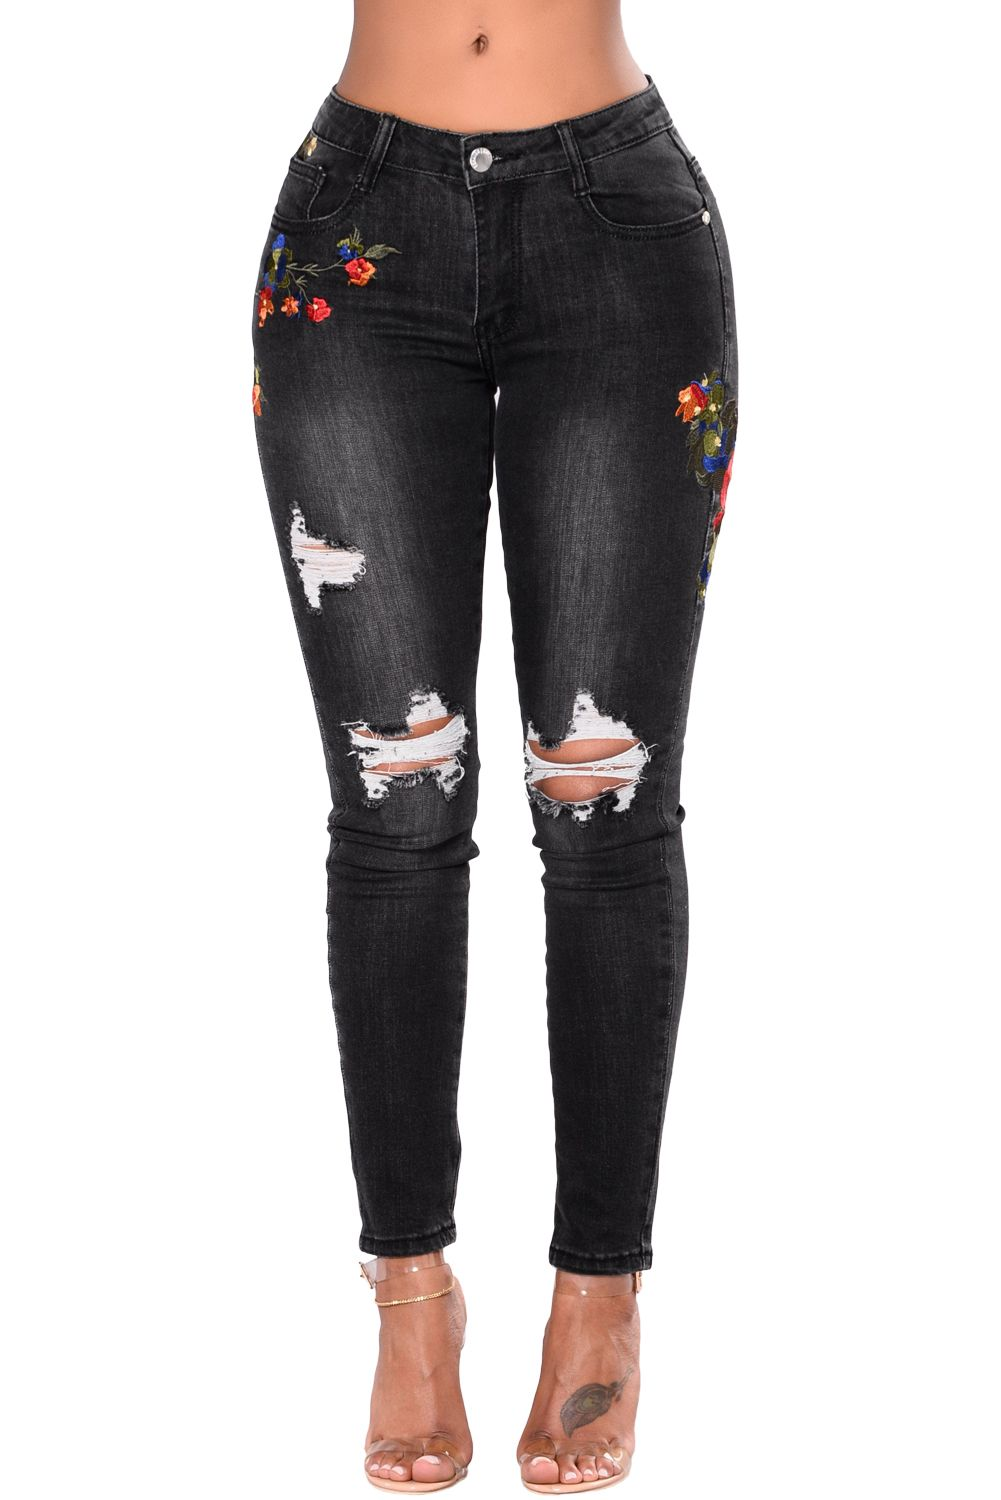 b6b8d9a637f Black Mid Rise Distressed Rose Embroidery Jeans in 2019